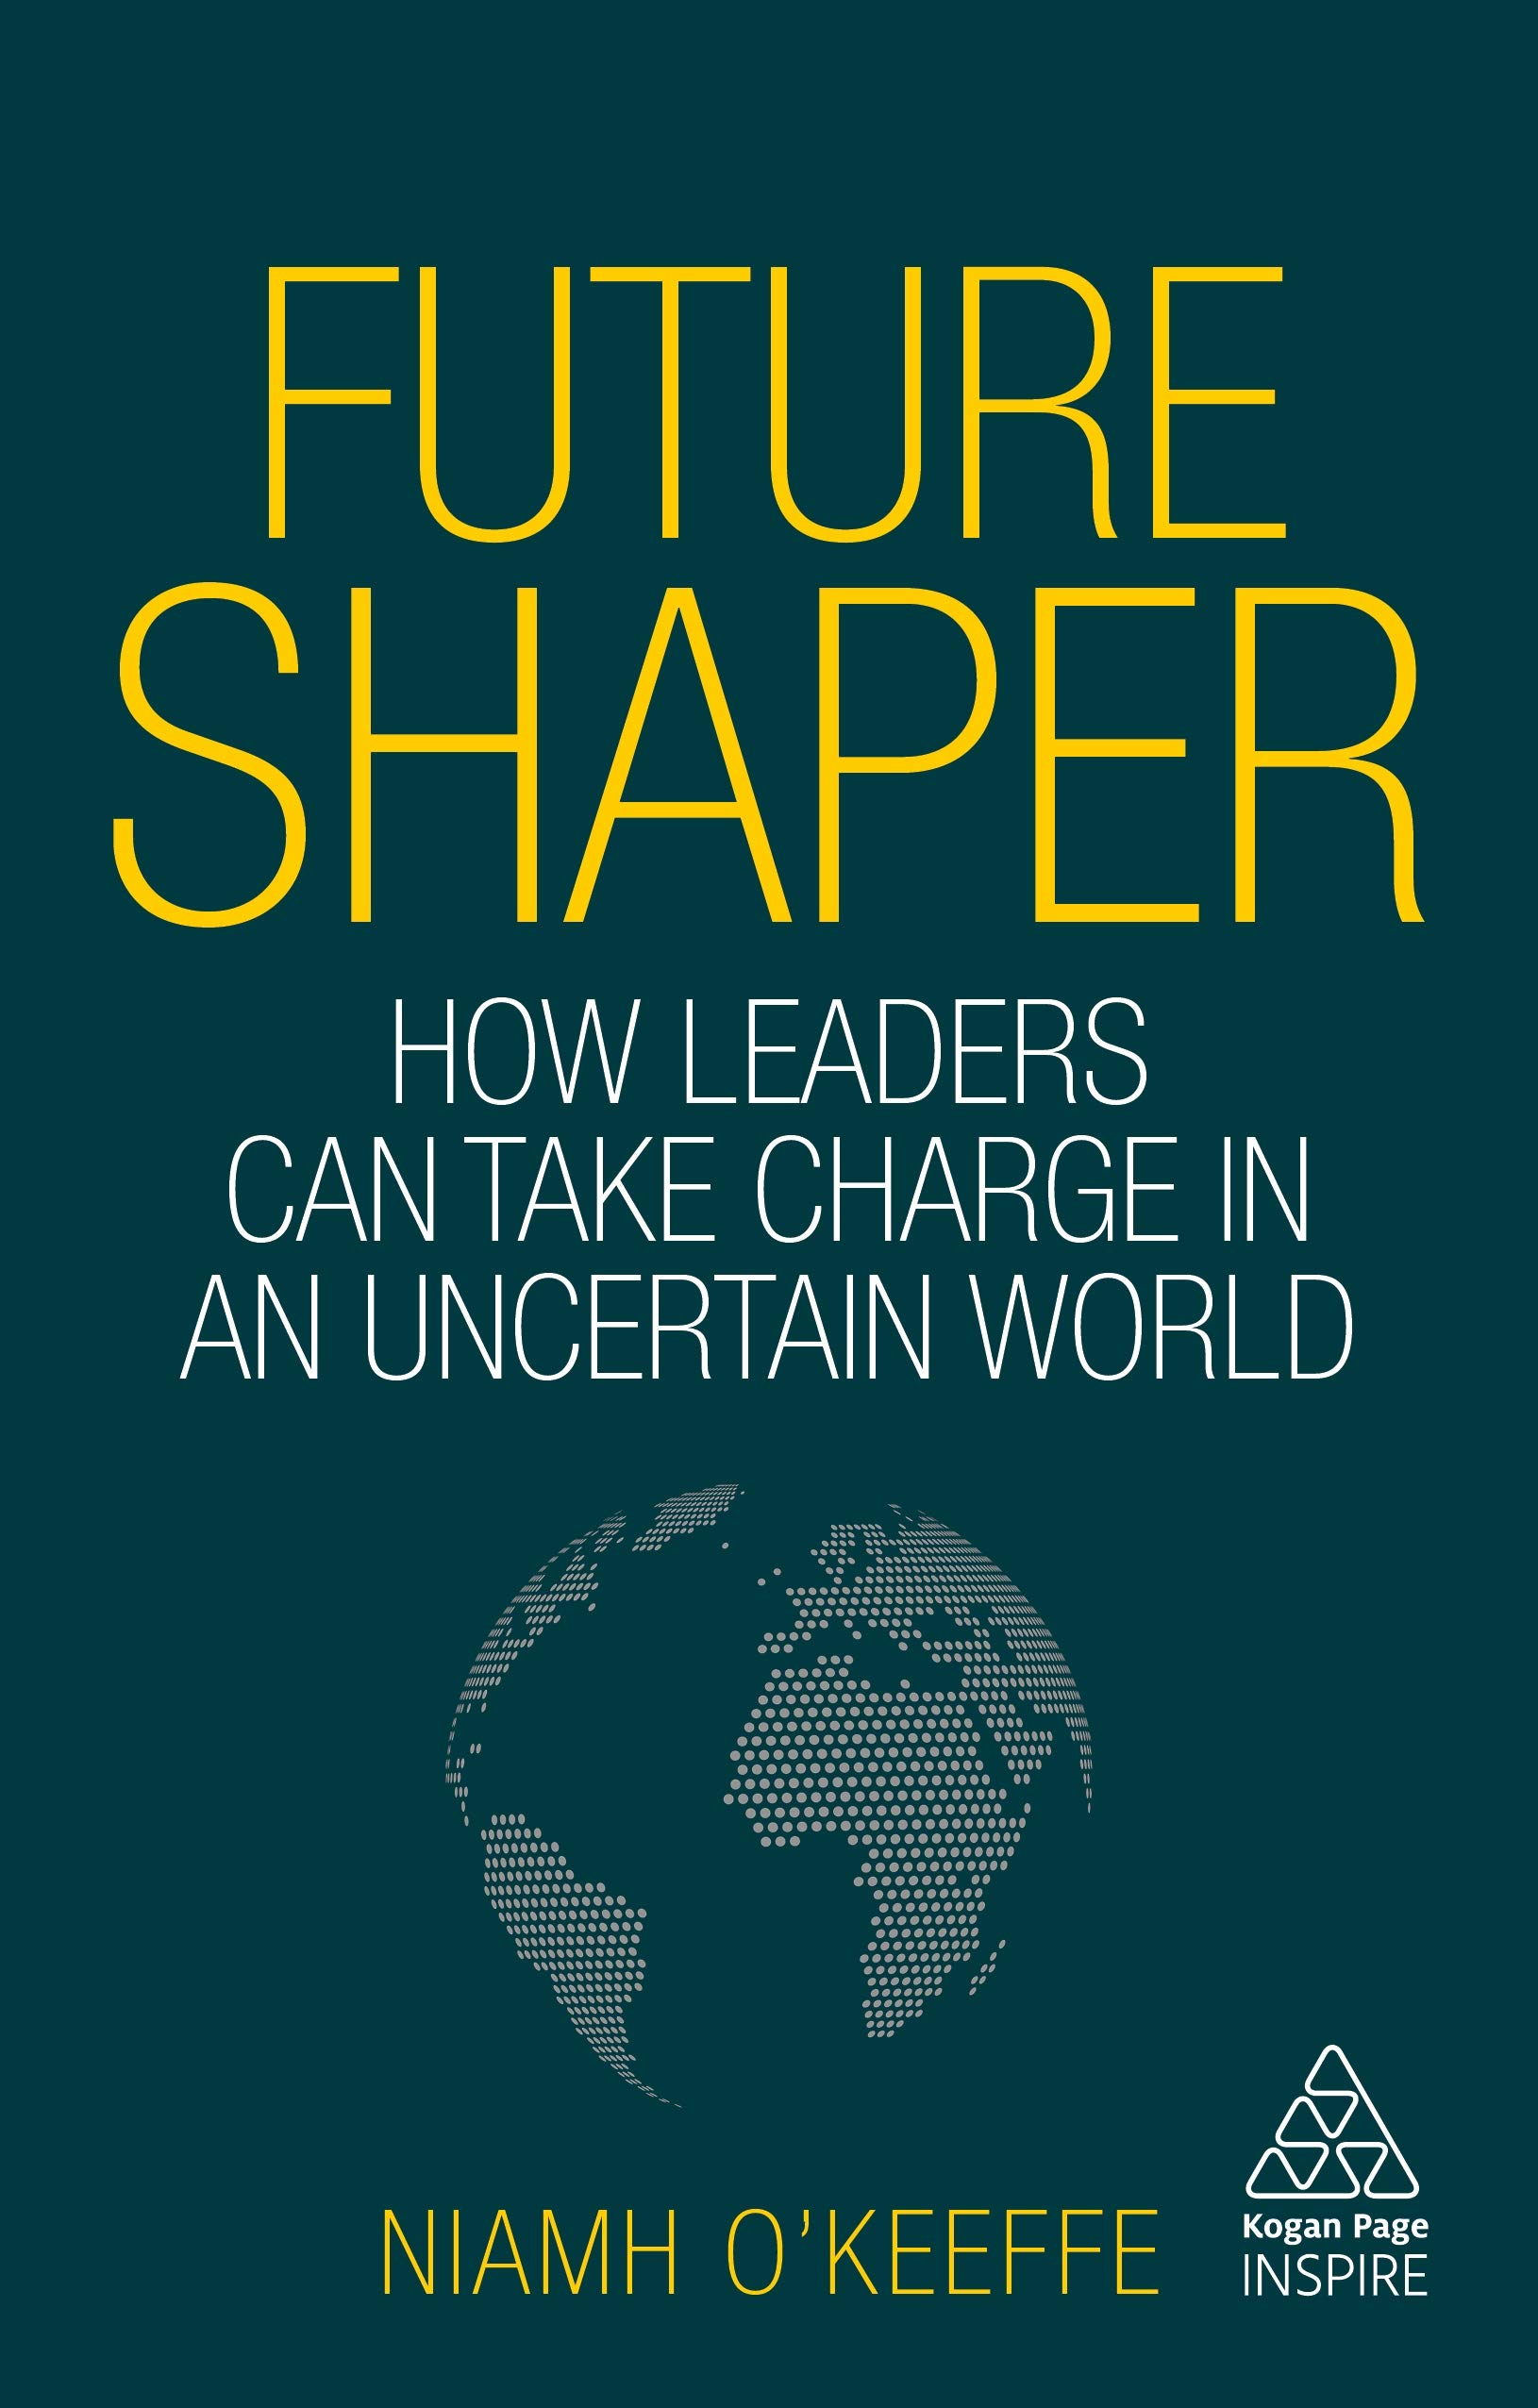 Future Shaper: How Leaders Can Take Charge in an Uncertain World